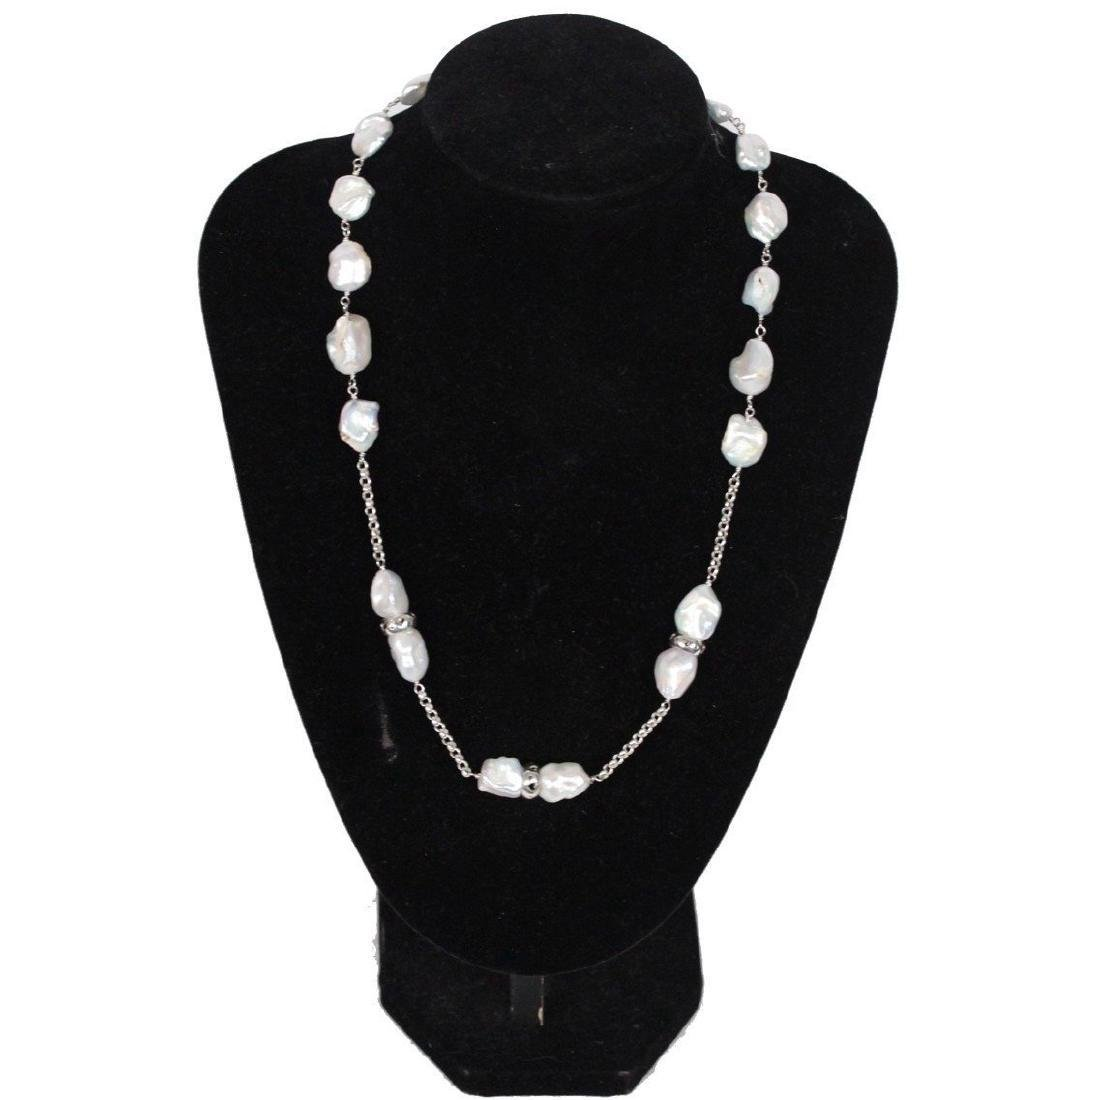 Sterling Silver & Baroque Pearls Necklace